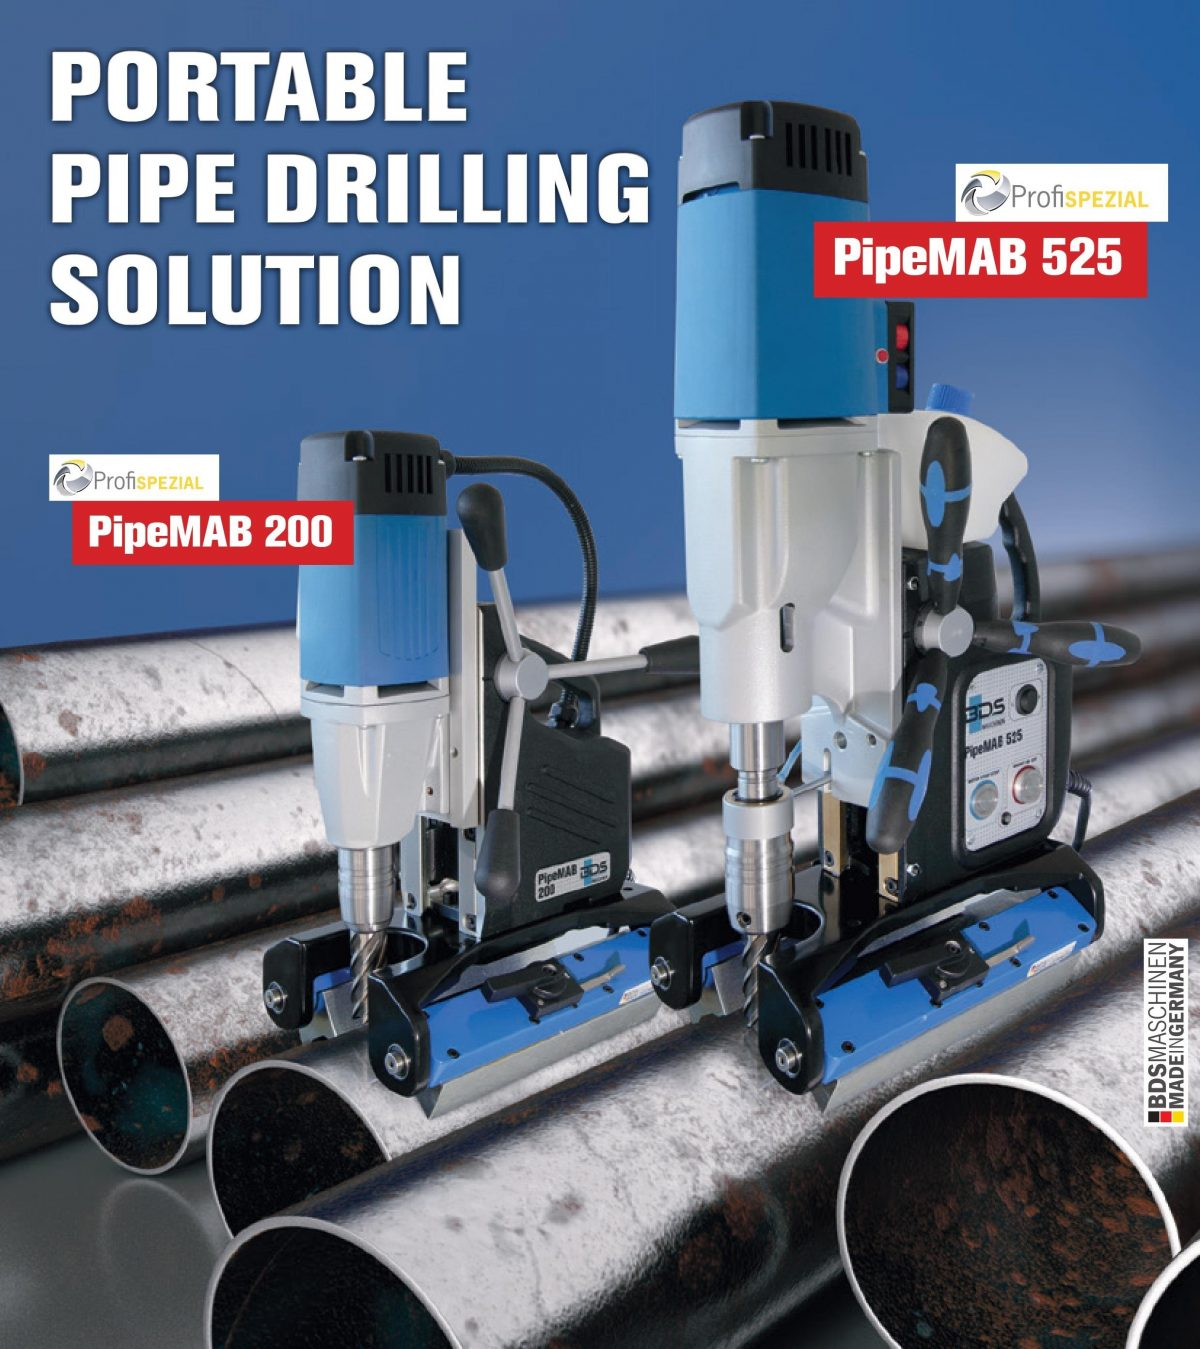 Pipe Drilling Machines